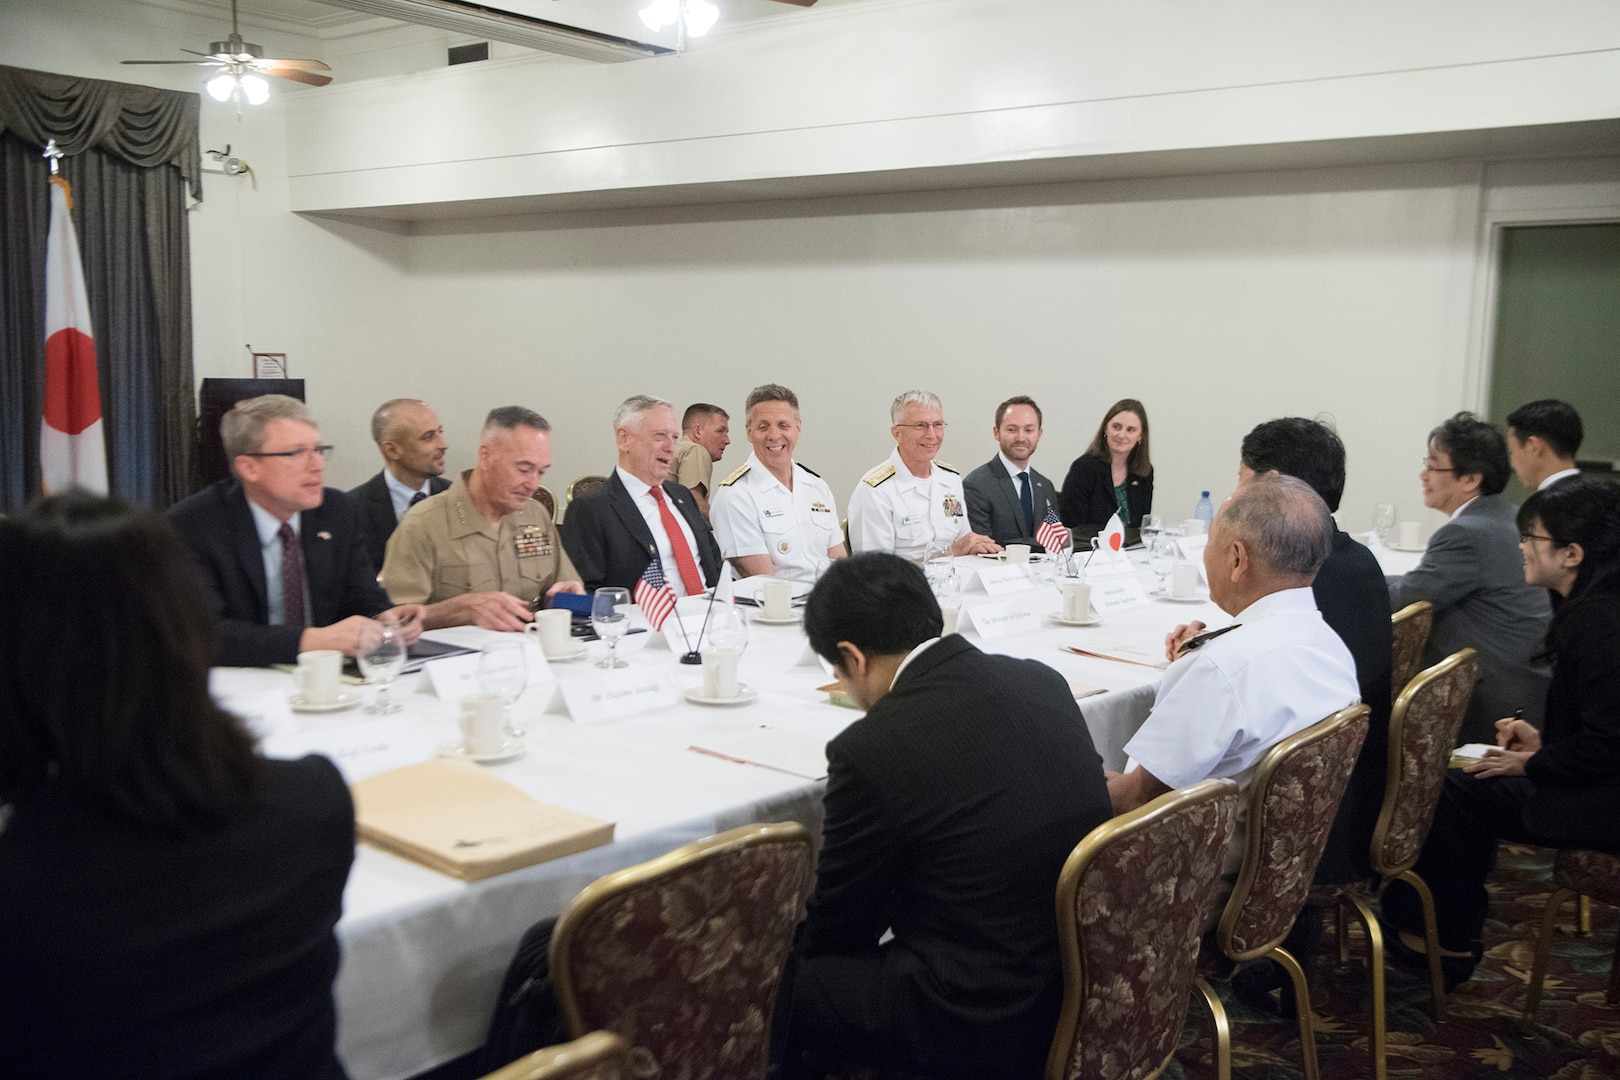 Dunford to Attend Pacom Command Change, Meet With Pacific Allies